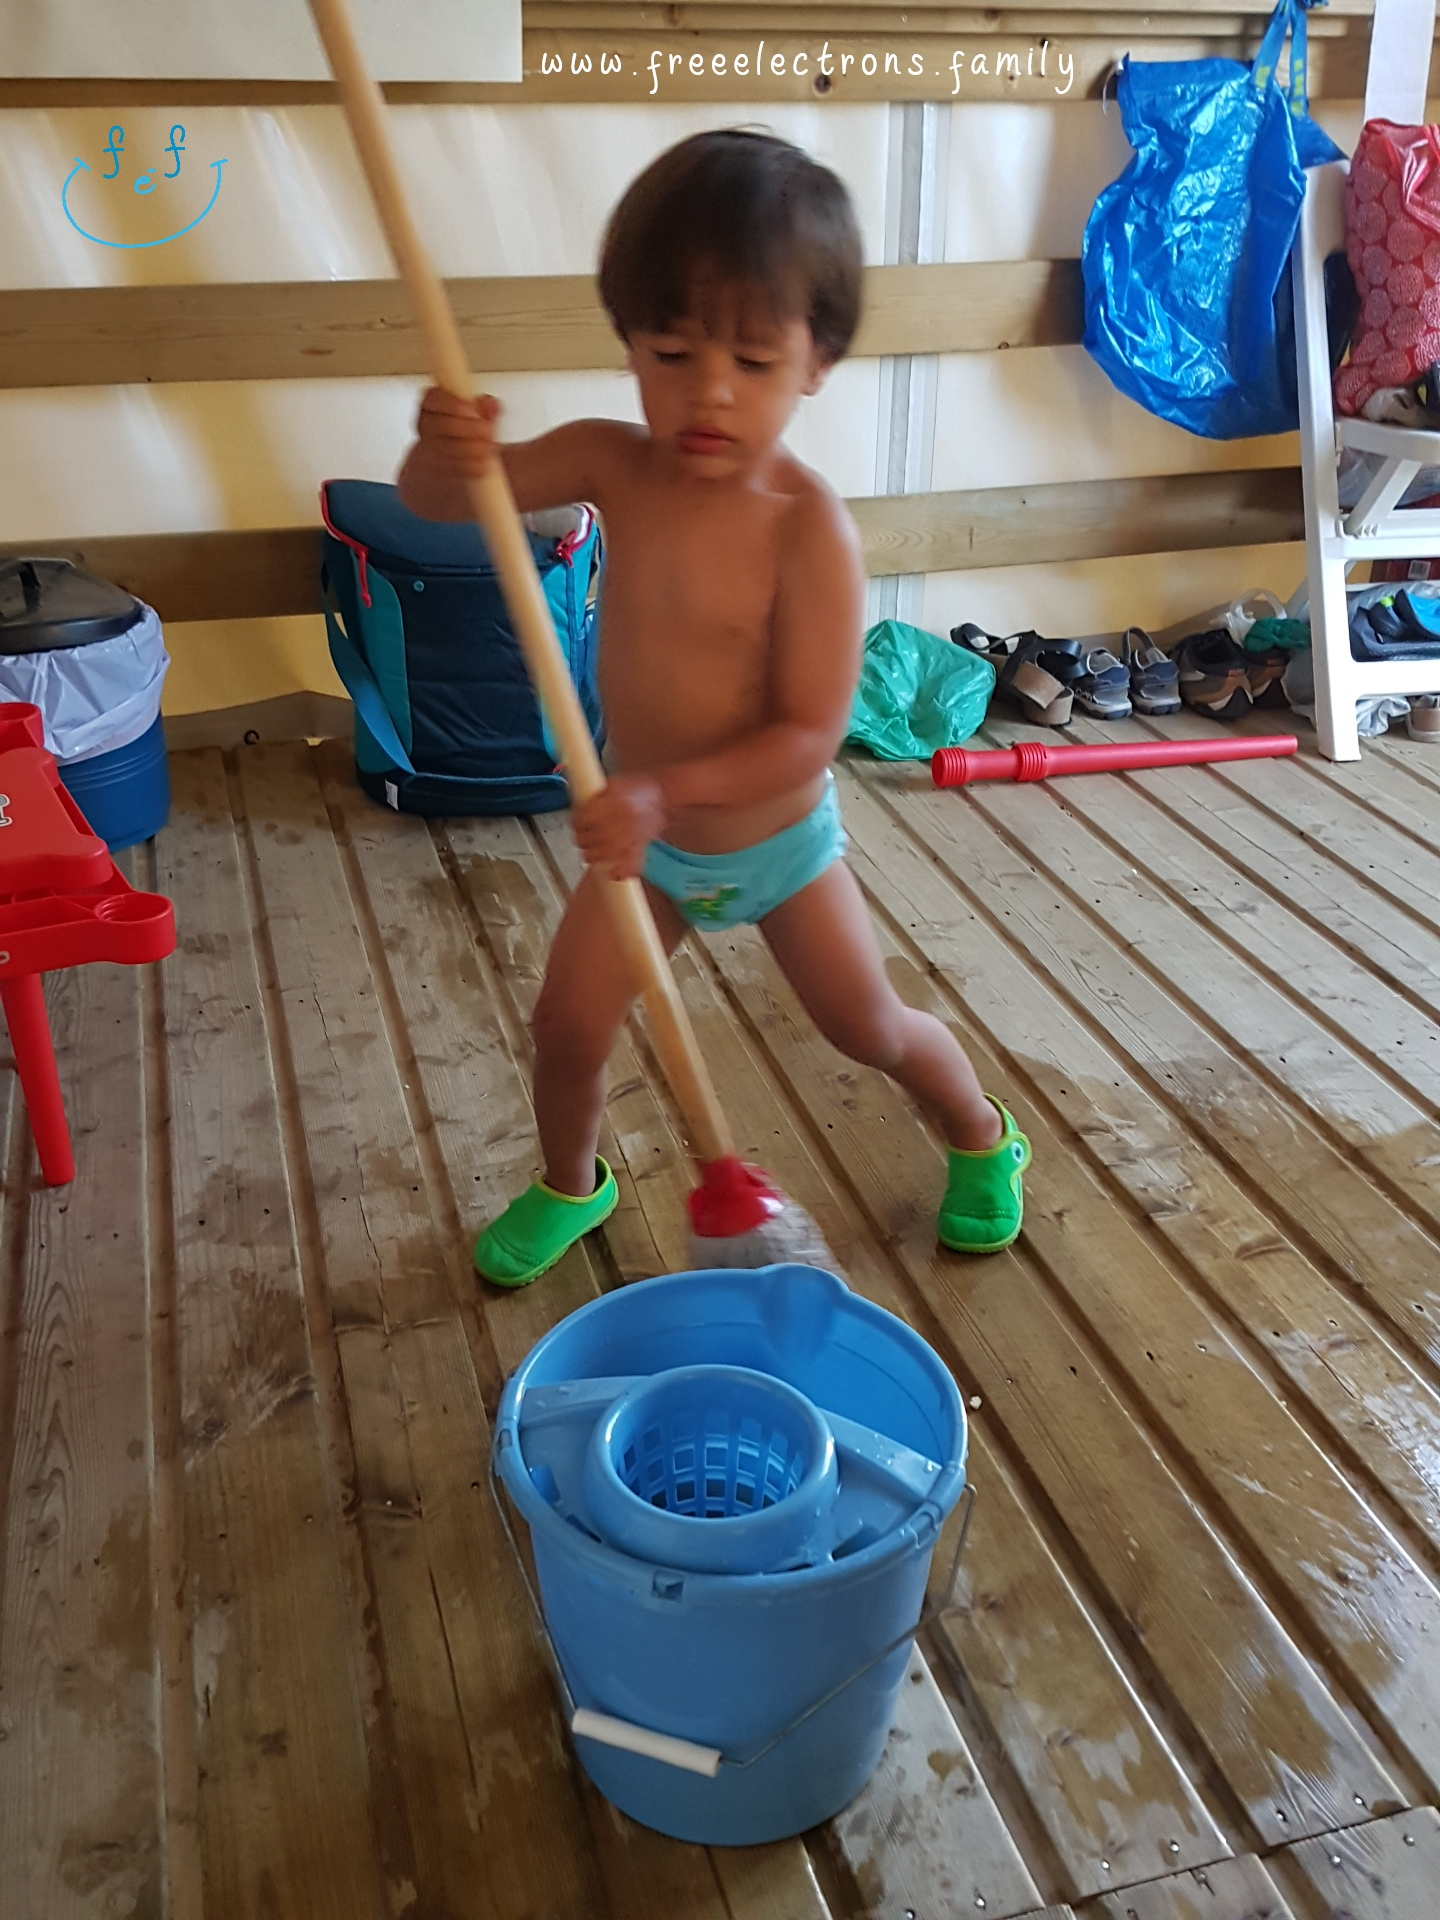 A young boy, shirtless, cleans up with a broom in a camping cabin.  #FreeElectrons.Family - camping road trip Europe, Agde France.